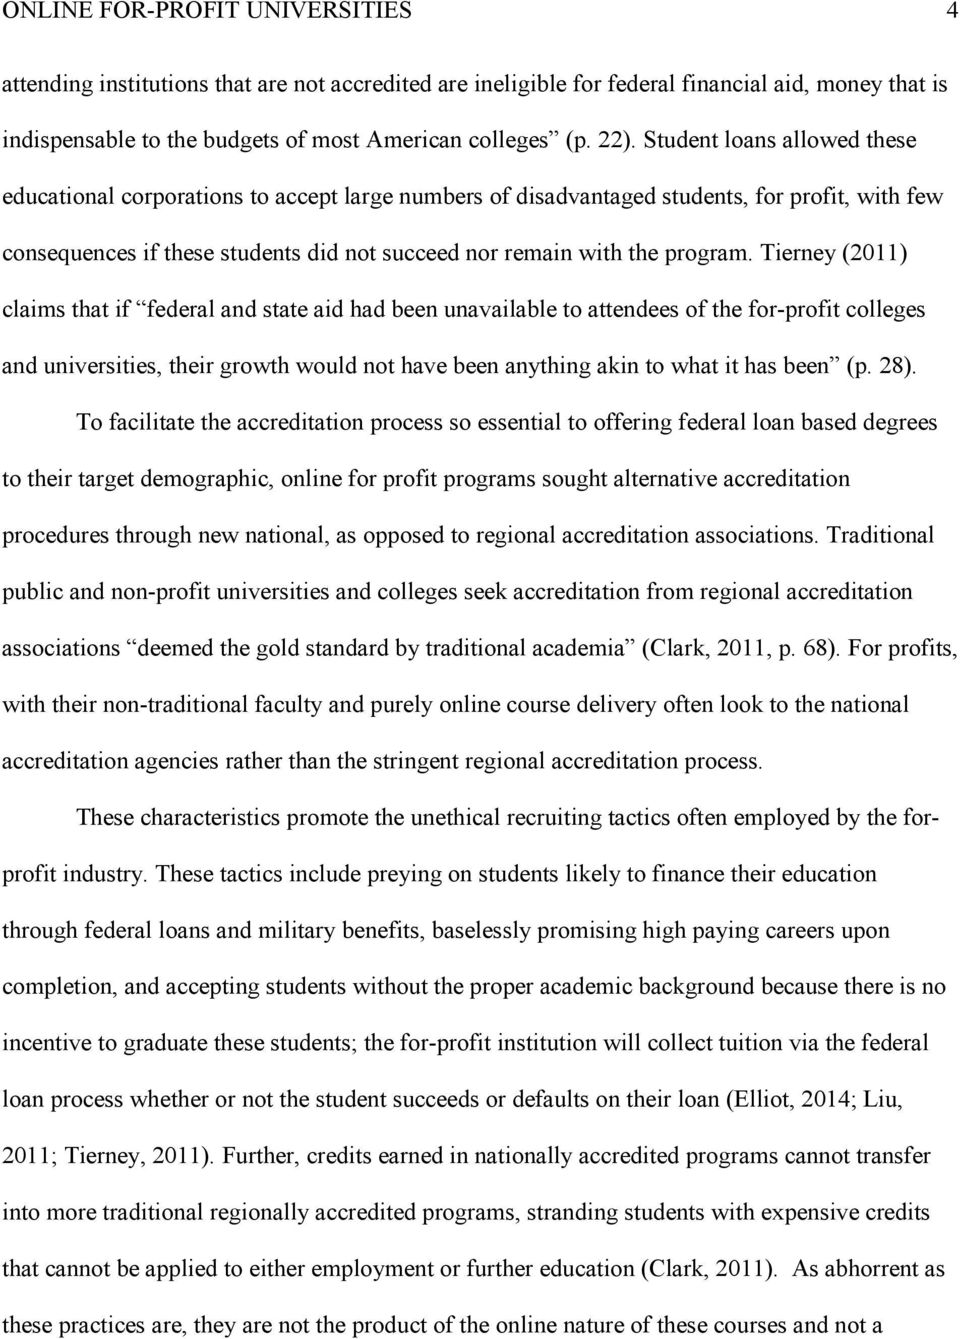 Tierney (2011) claims that if federal and state aid had been unavailable to attendees of the for-profit colleges and universities, their growth would not have been anything akin to what it has been